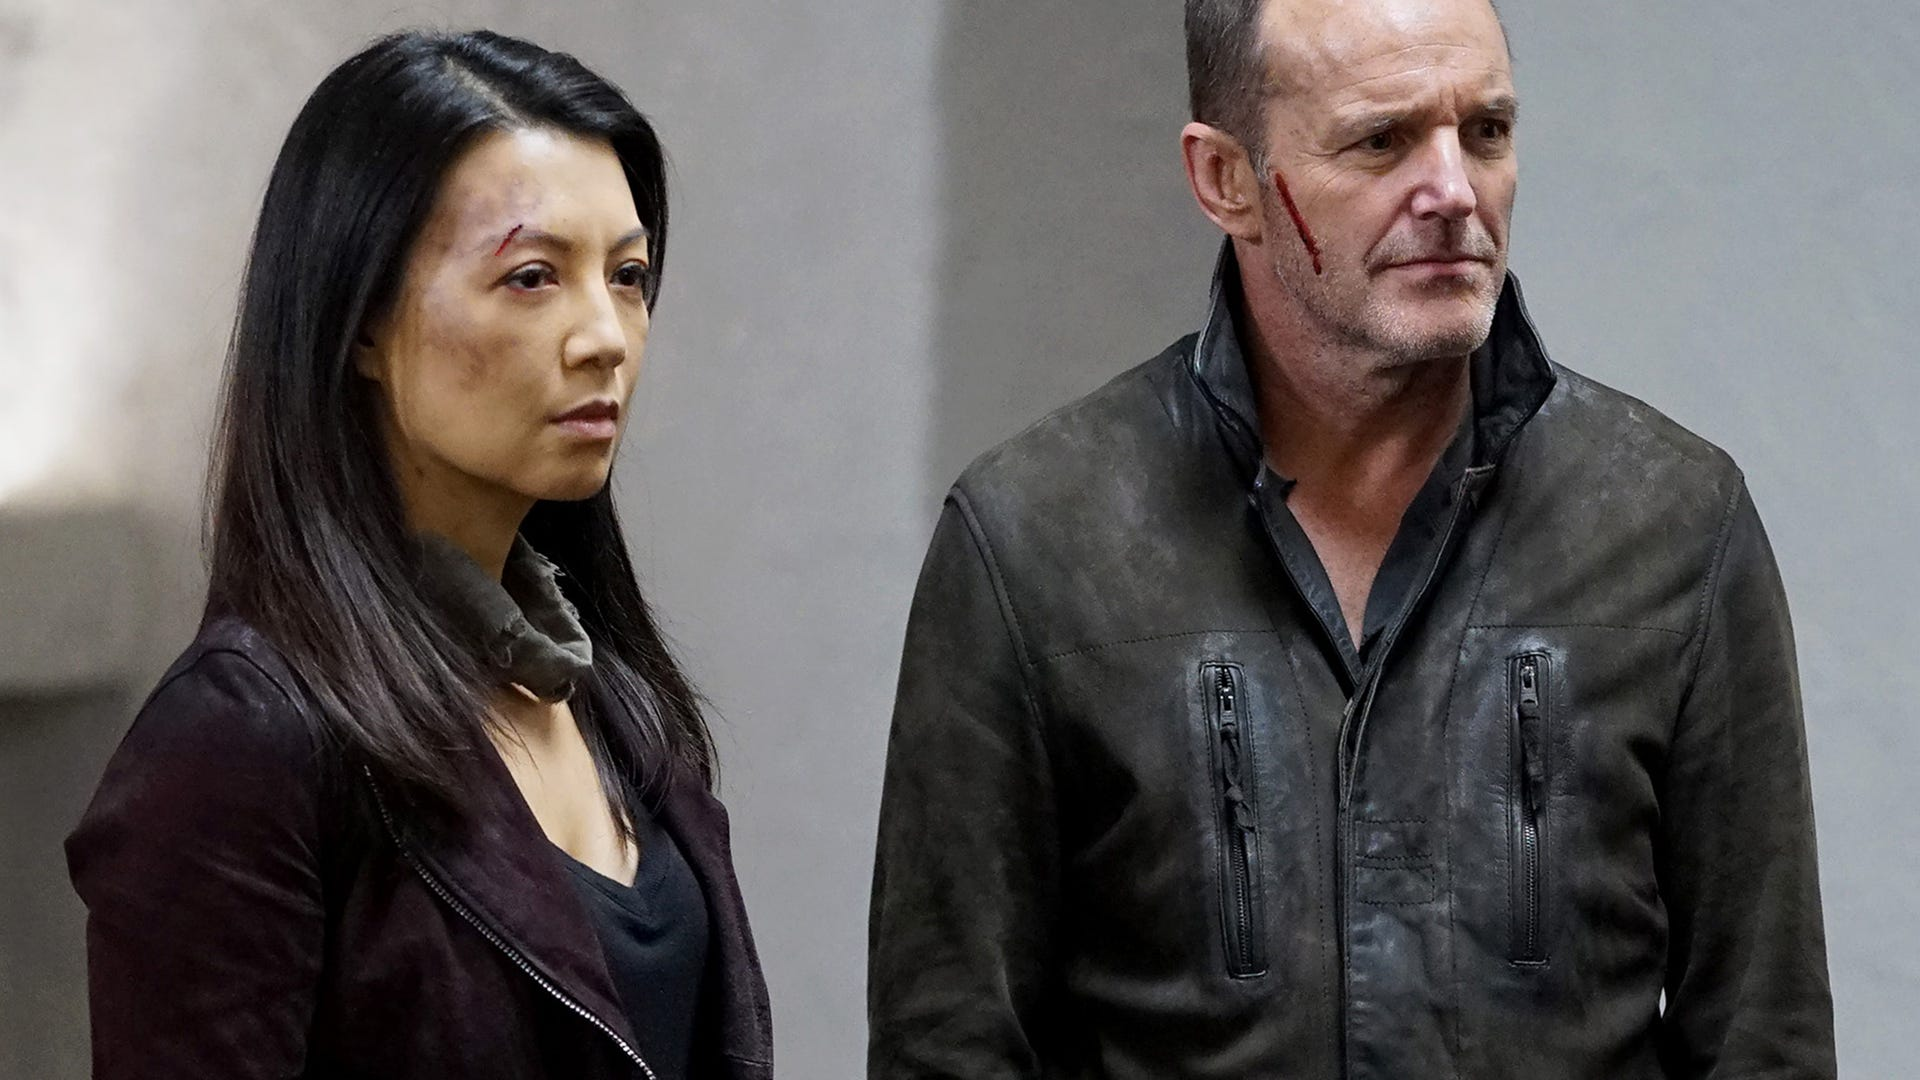 Ming-Na Wen and Clark Gregg, Marvel's Agents of S.H.I.E.L.D.